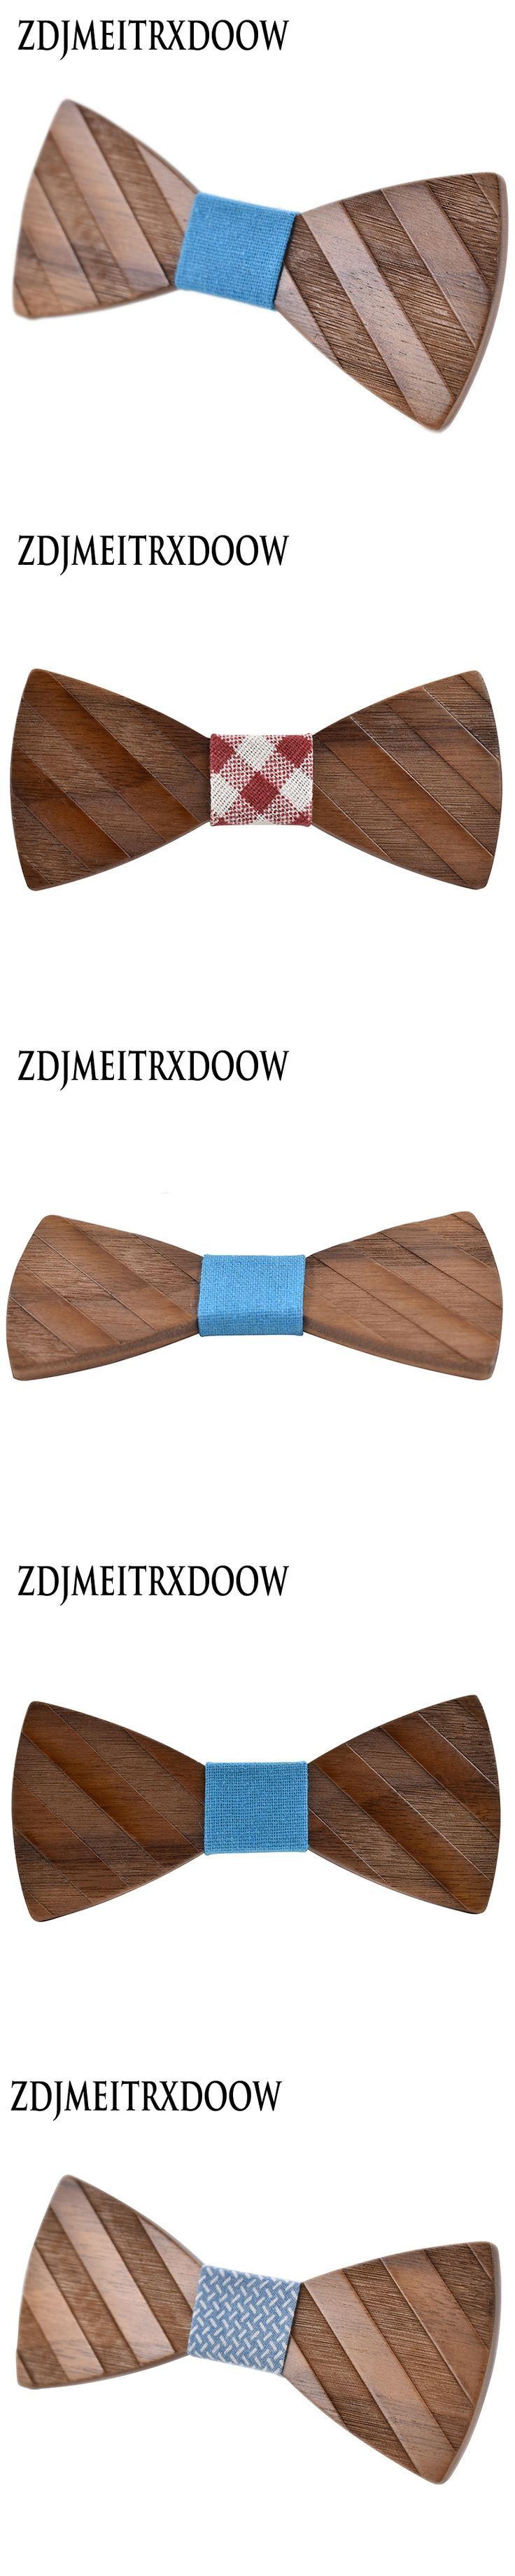 ZDJMEITRXDOOW Gravata Wedding Bow Tie Wooden Butterfly For Men's Suit Shirt Necktie Jewerly Accessory Casual fashion bow tie